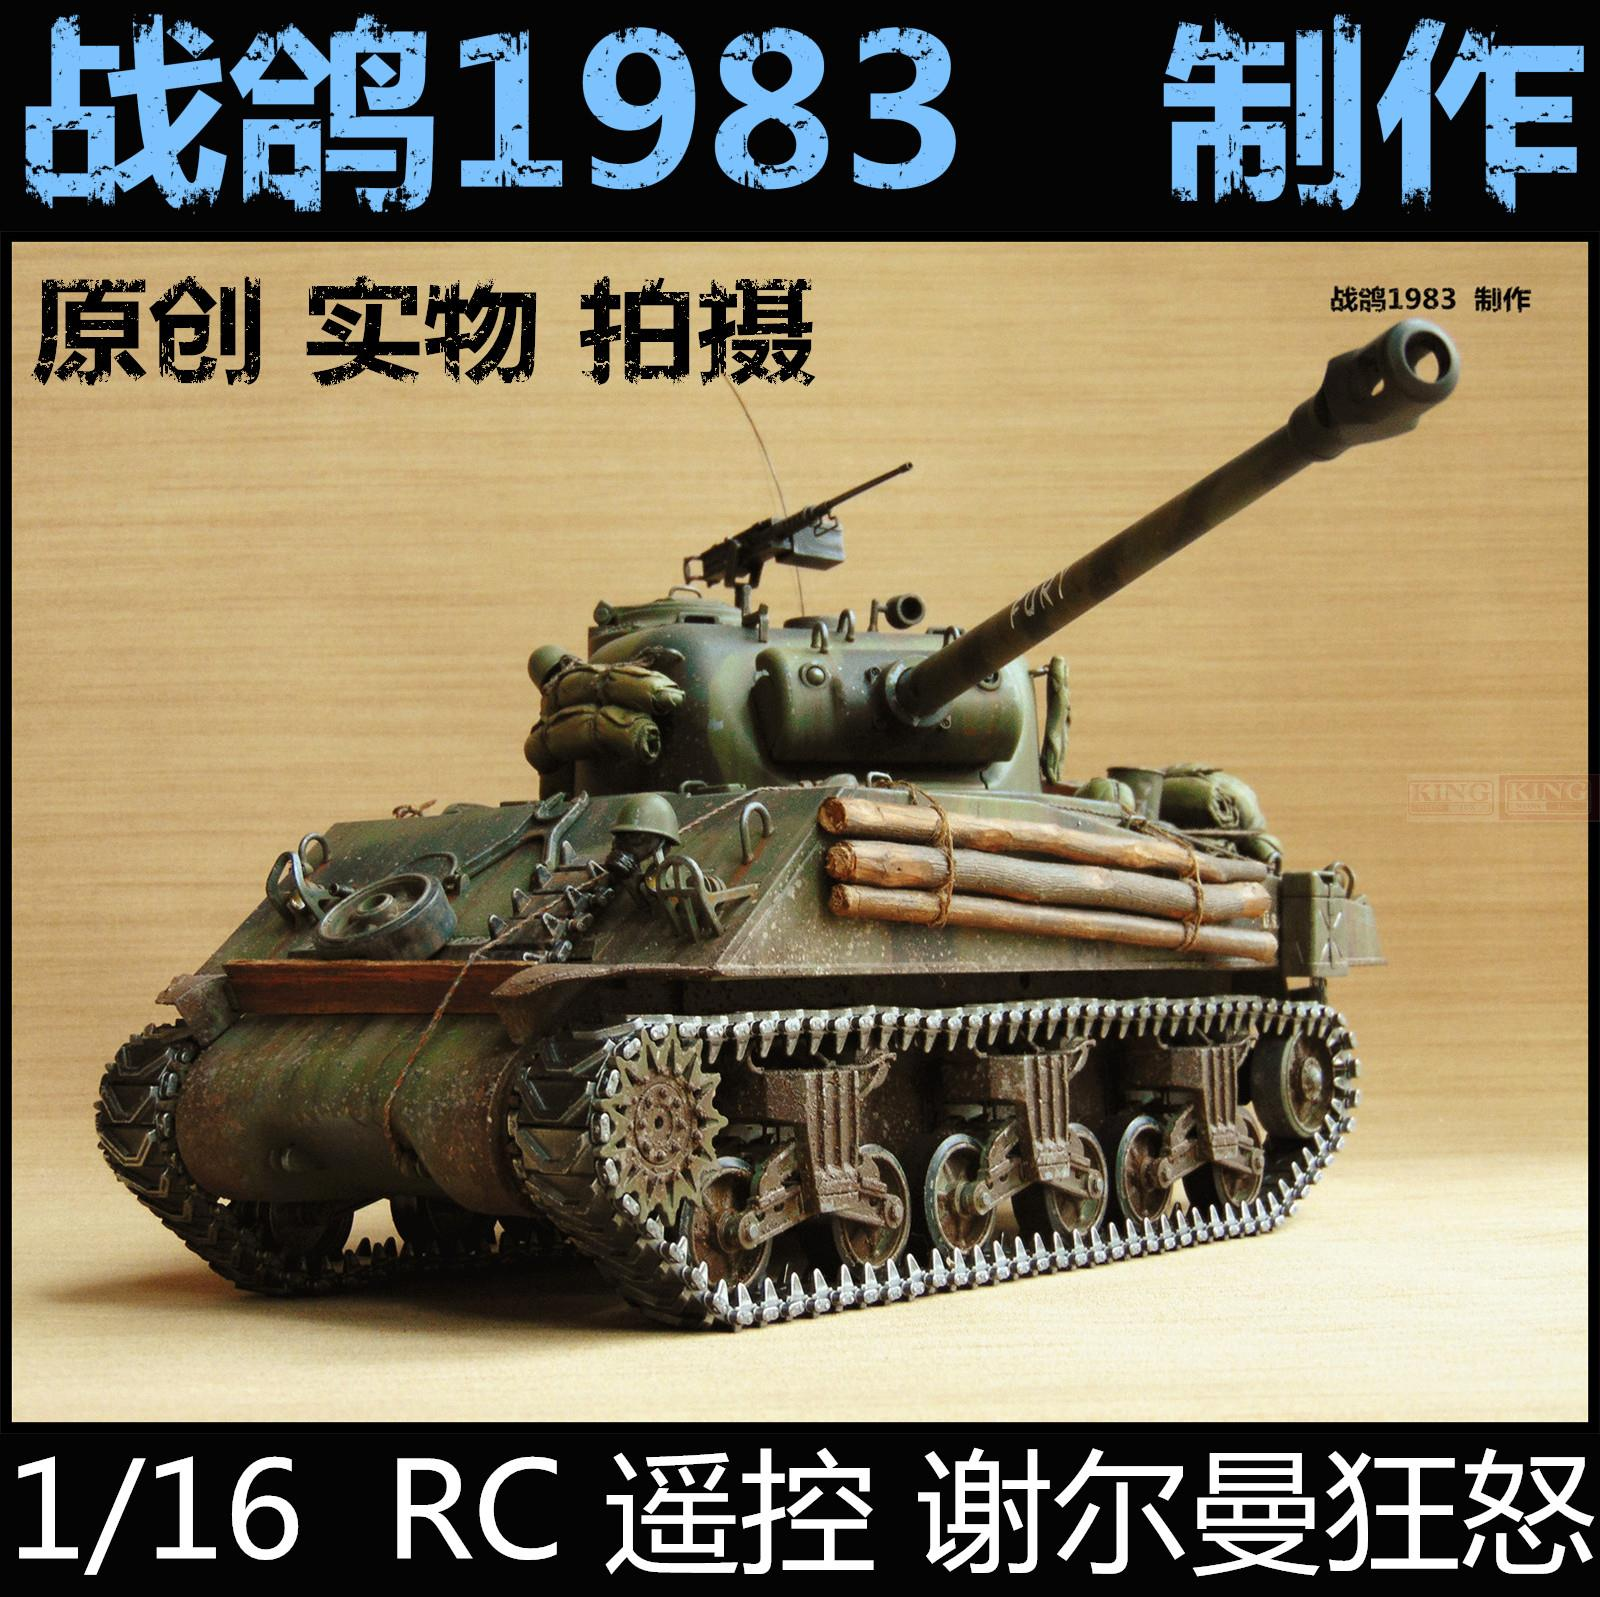 KNL HOBBY Heng Long, 1 / 16RC Remote Sherman Tank model rage OEM coating of paint to do the old knl hobby voyager model pe35418 m1a1 tusk1 ubilan